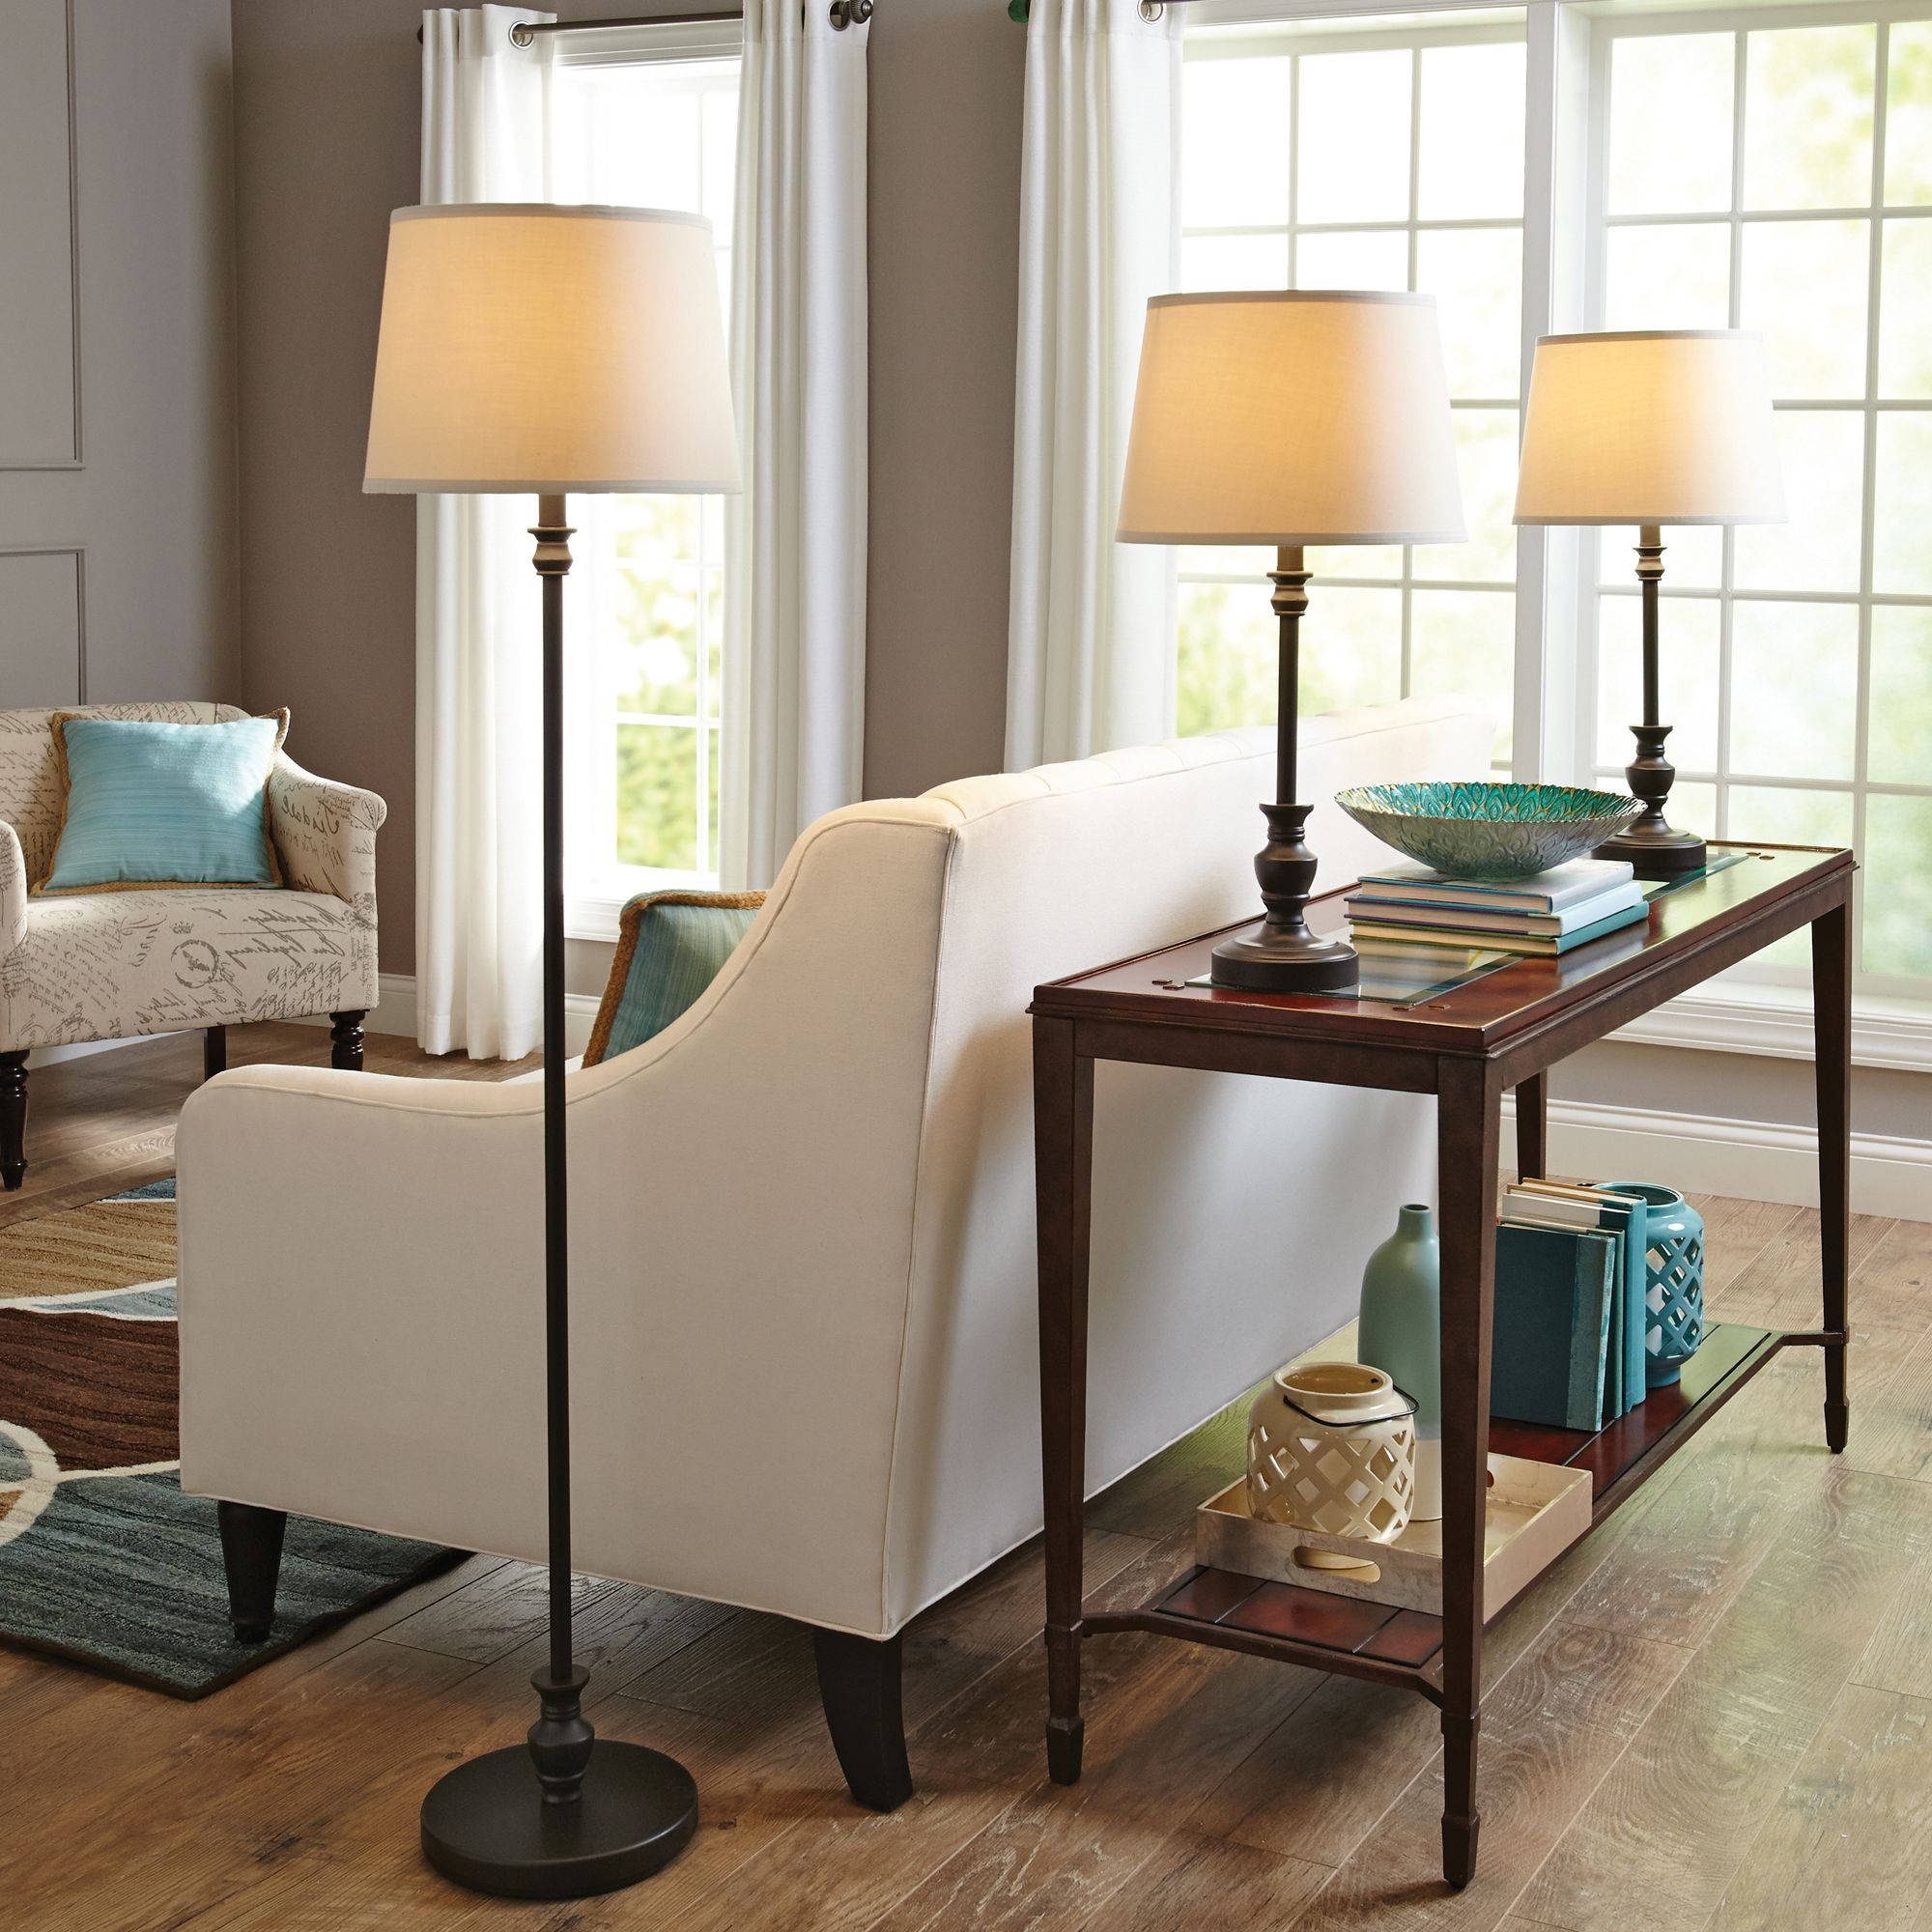 Most Current Better Homes & Gardens 3 Piece Lamp Set, Bronze Finish – Walmart In Living Room Table Lamps Sets (View 18 of 20)